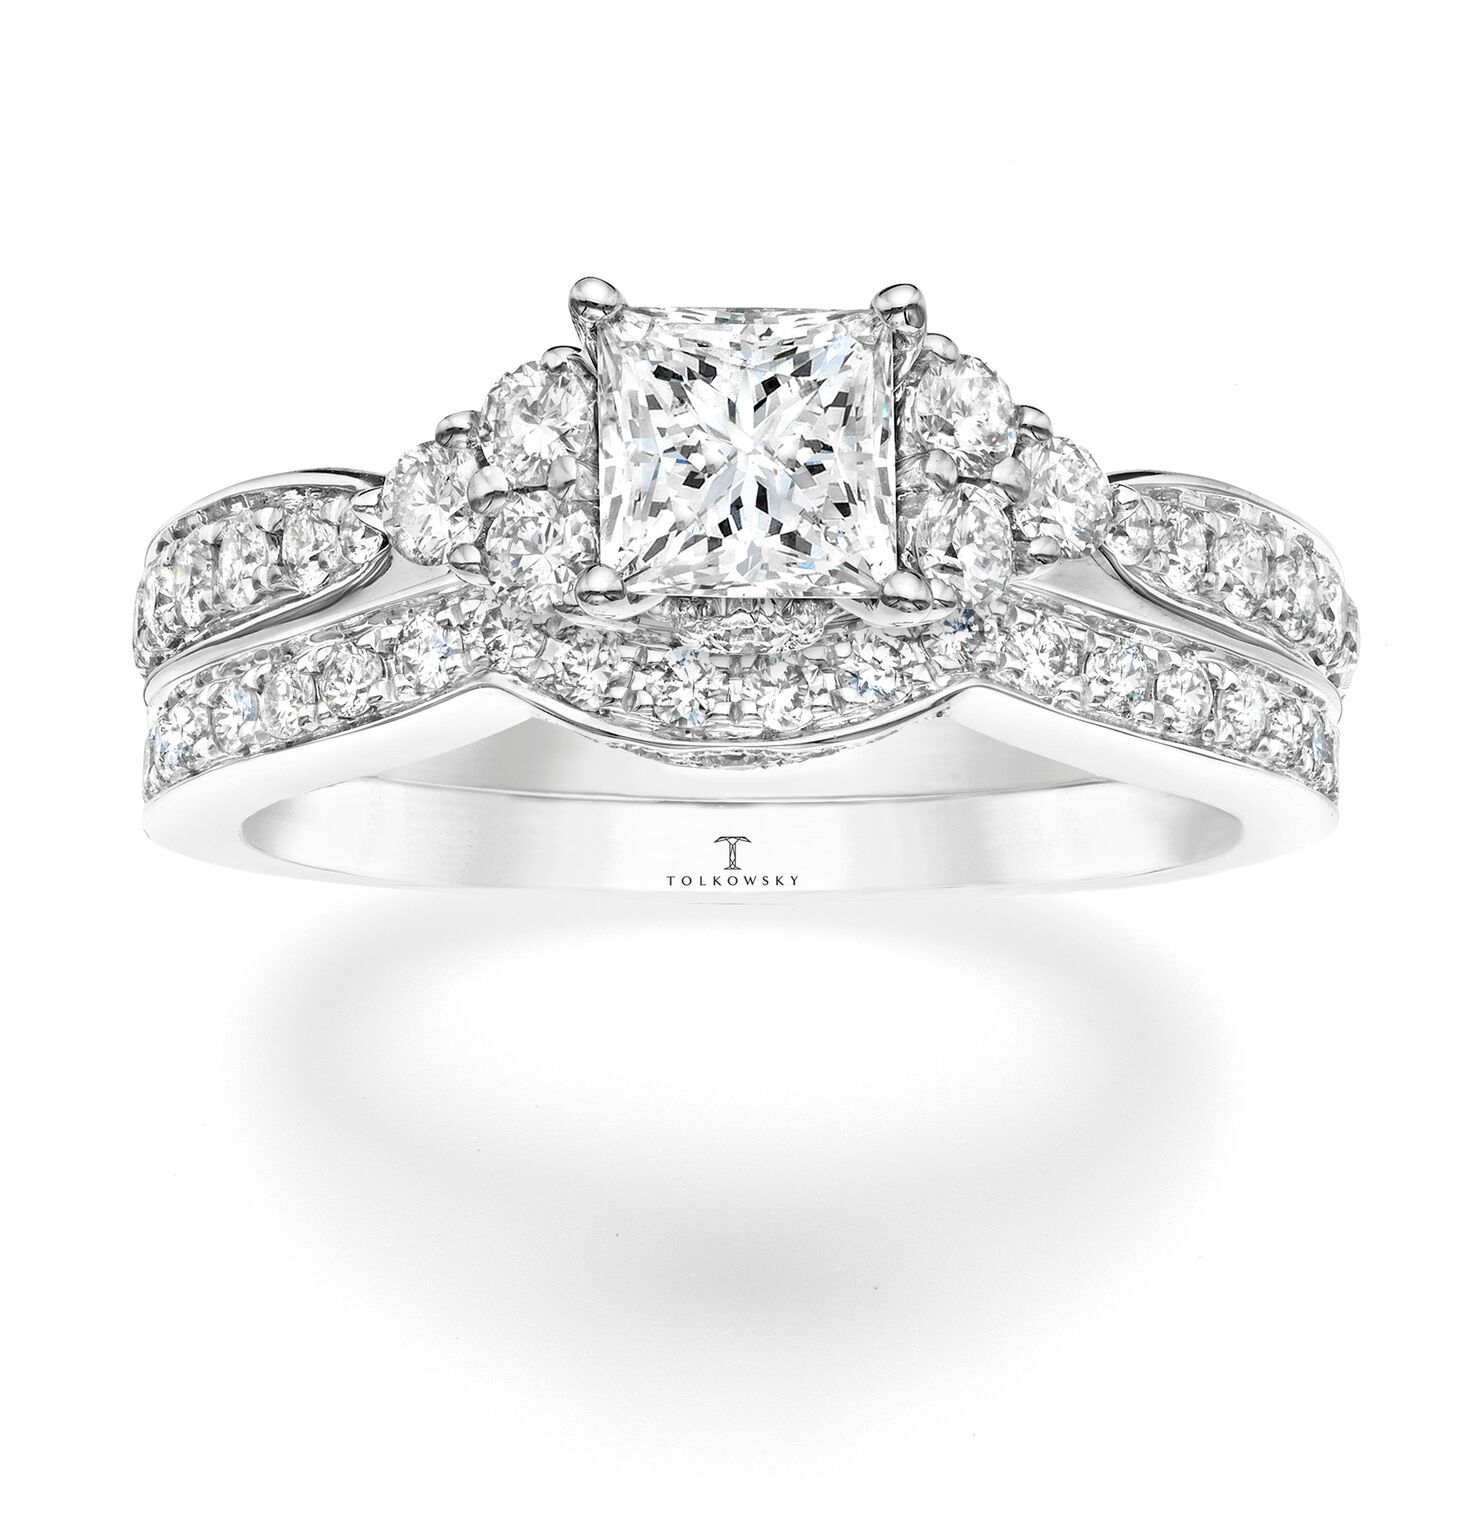 tolkowsky diamond bridal set in 14k white gold. available in the